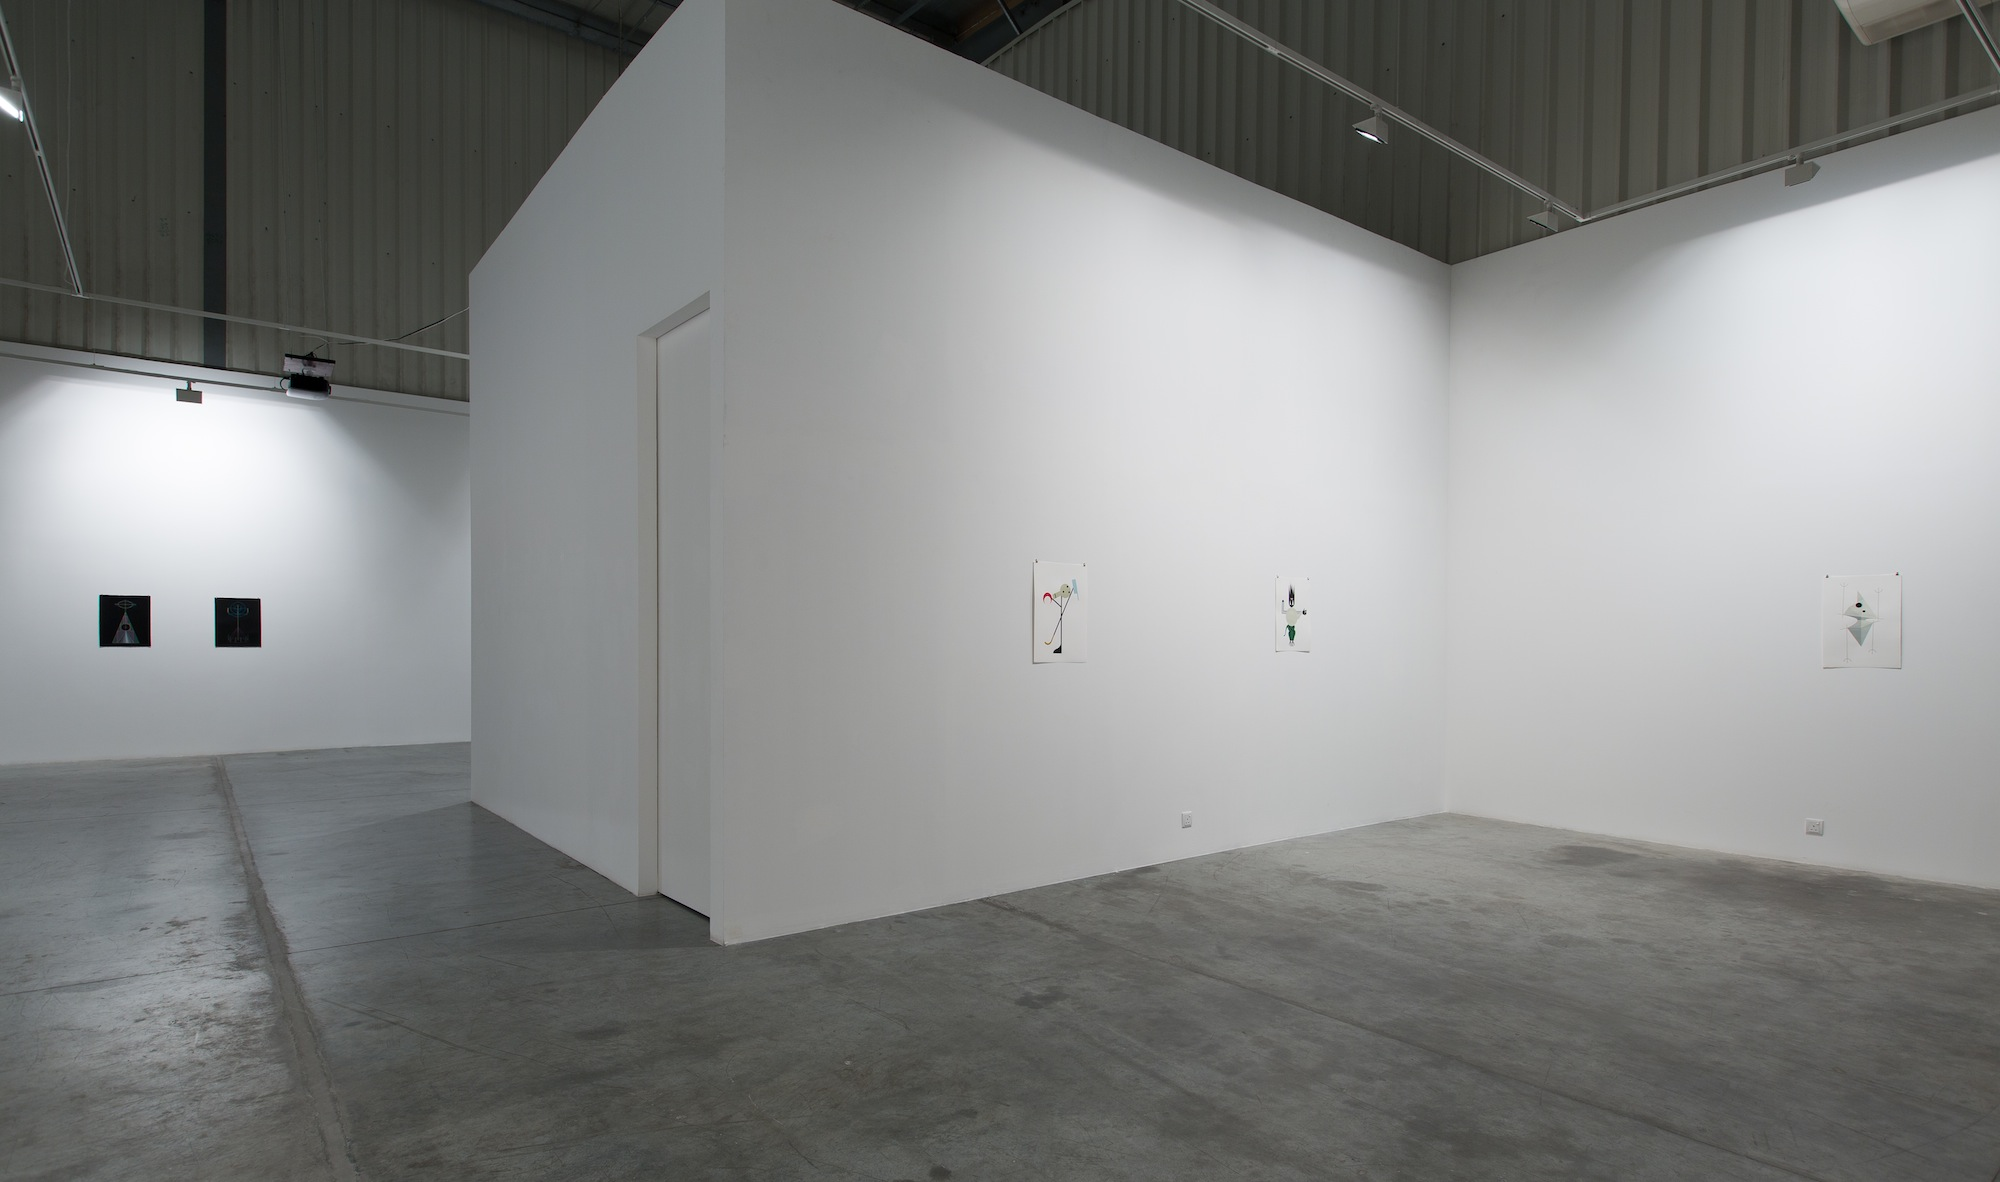 Installation view / New Works, Fahd Burki